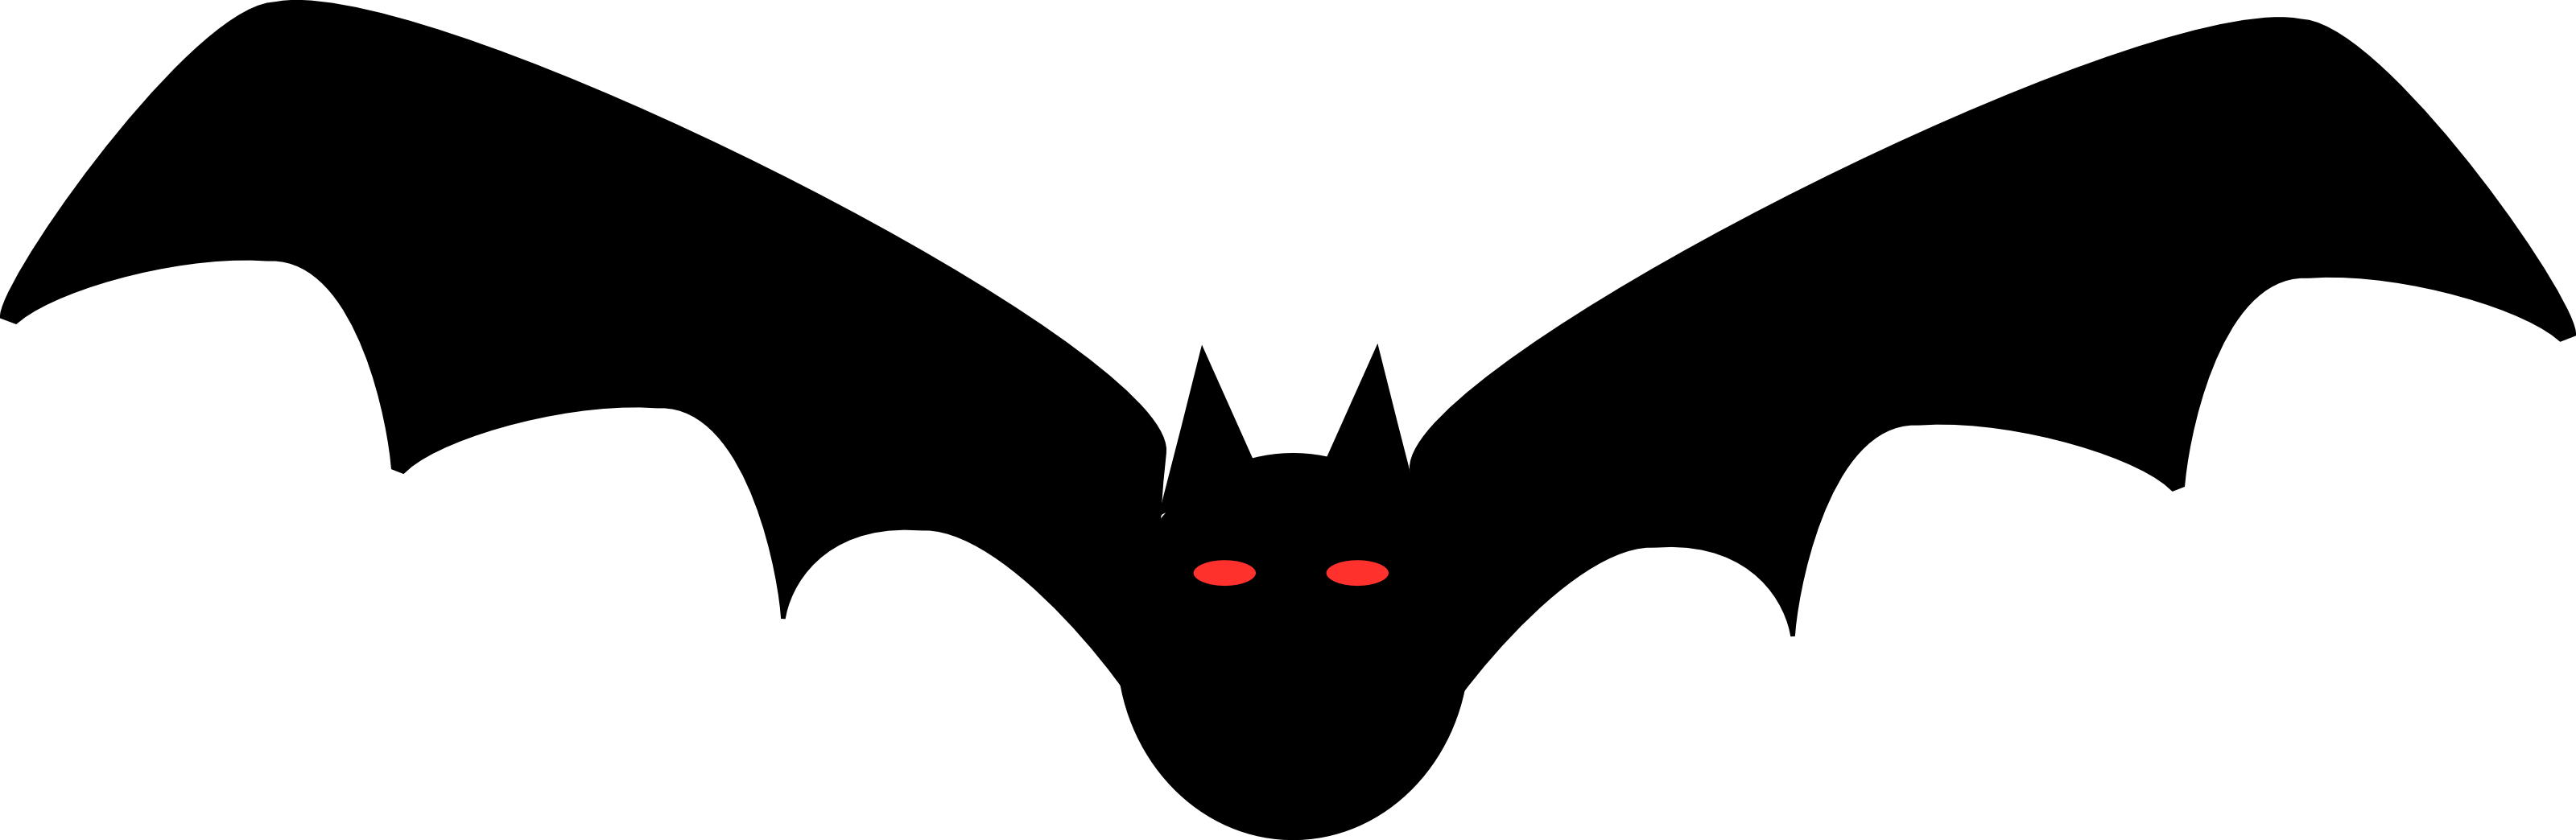 Halloween bat clipart.